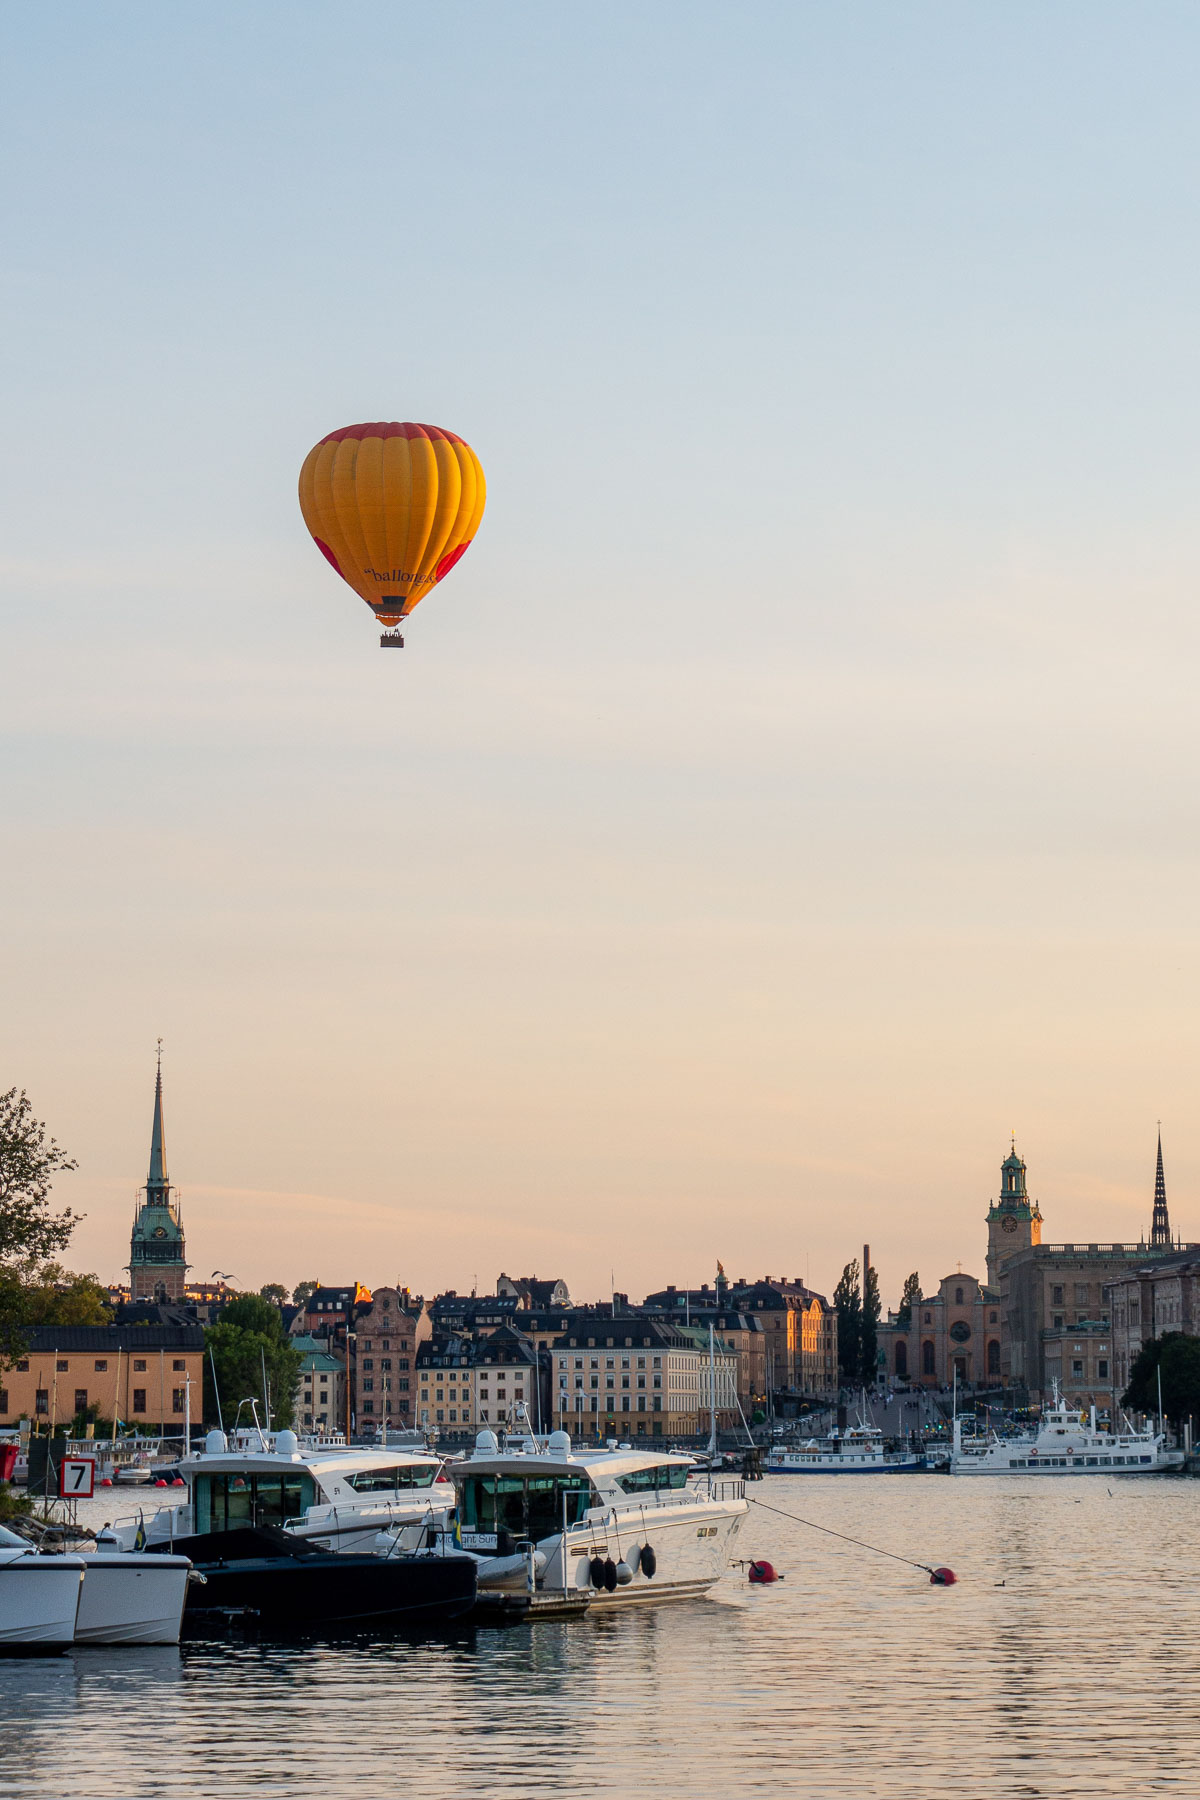 Hot air balloon over Stockholm